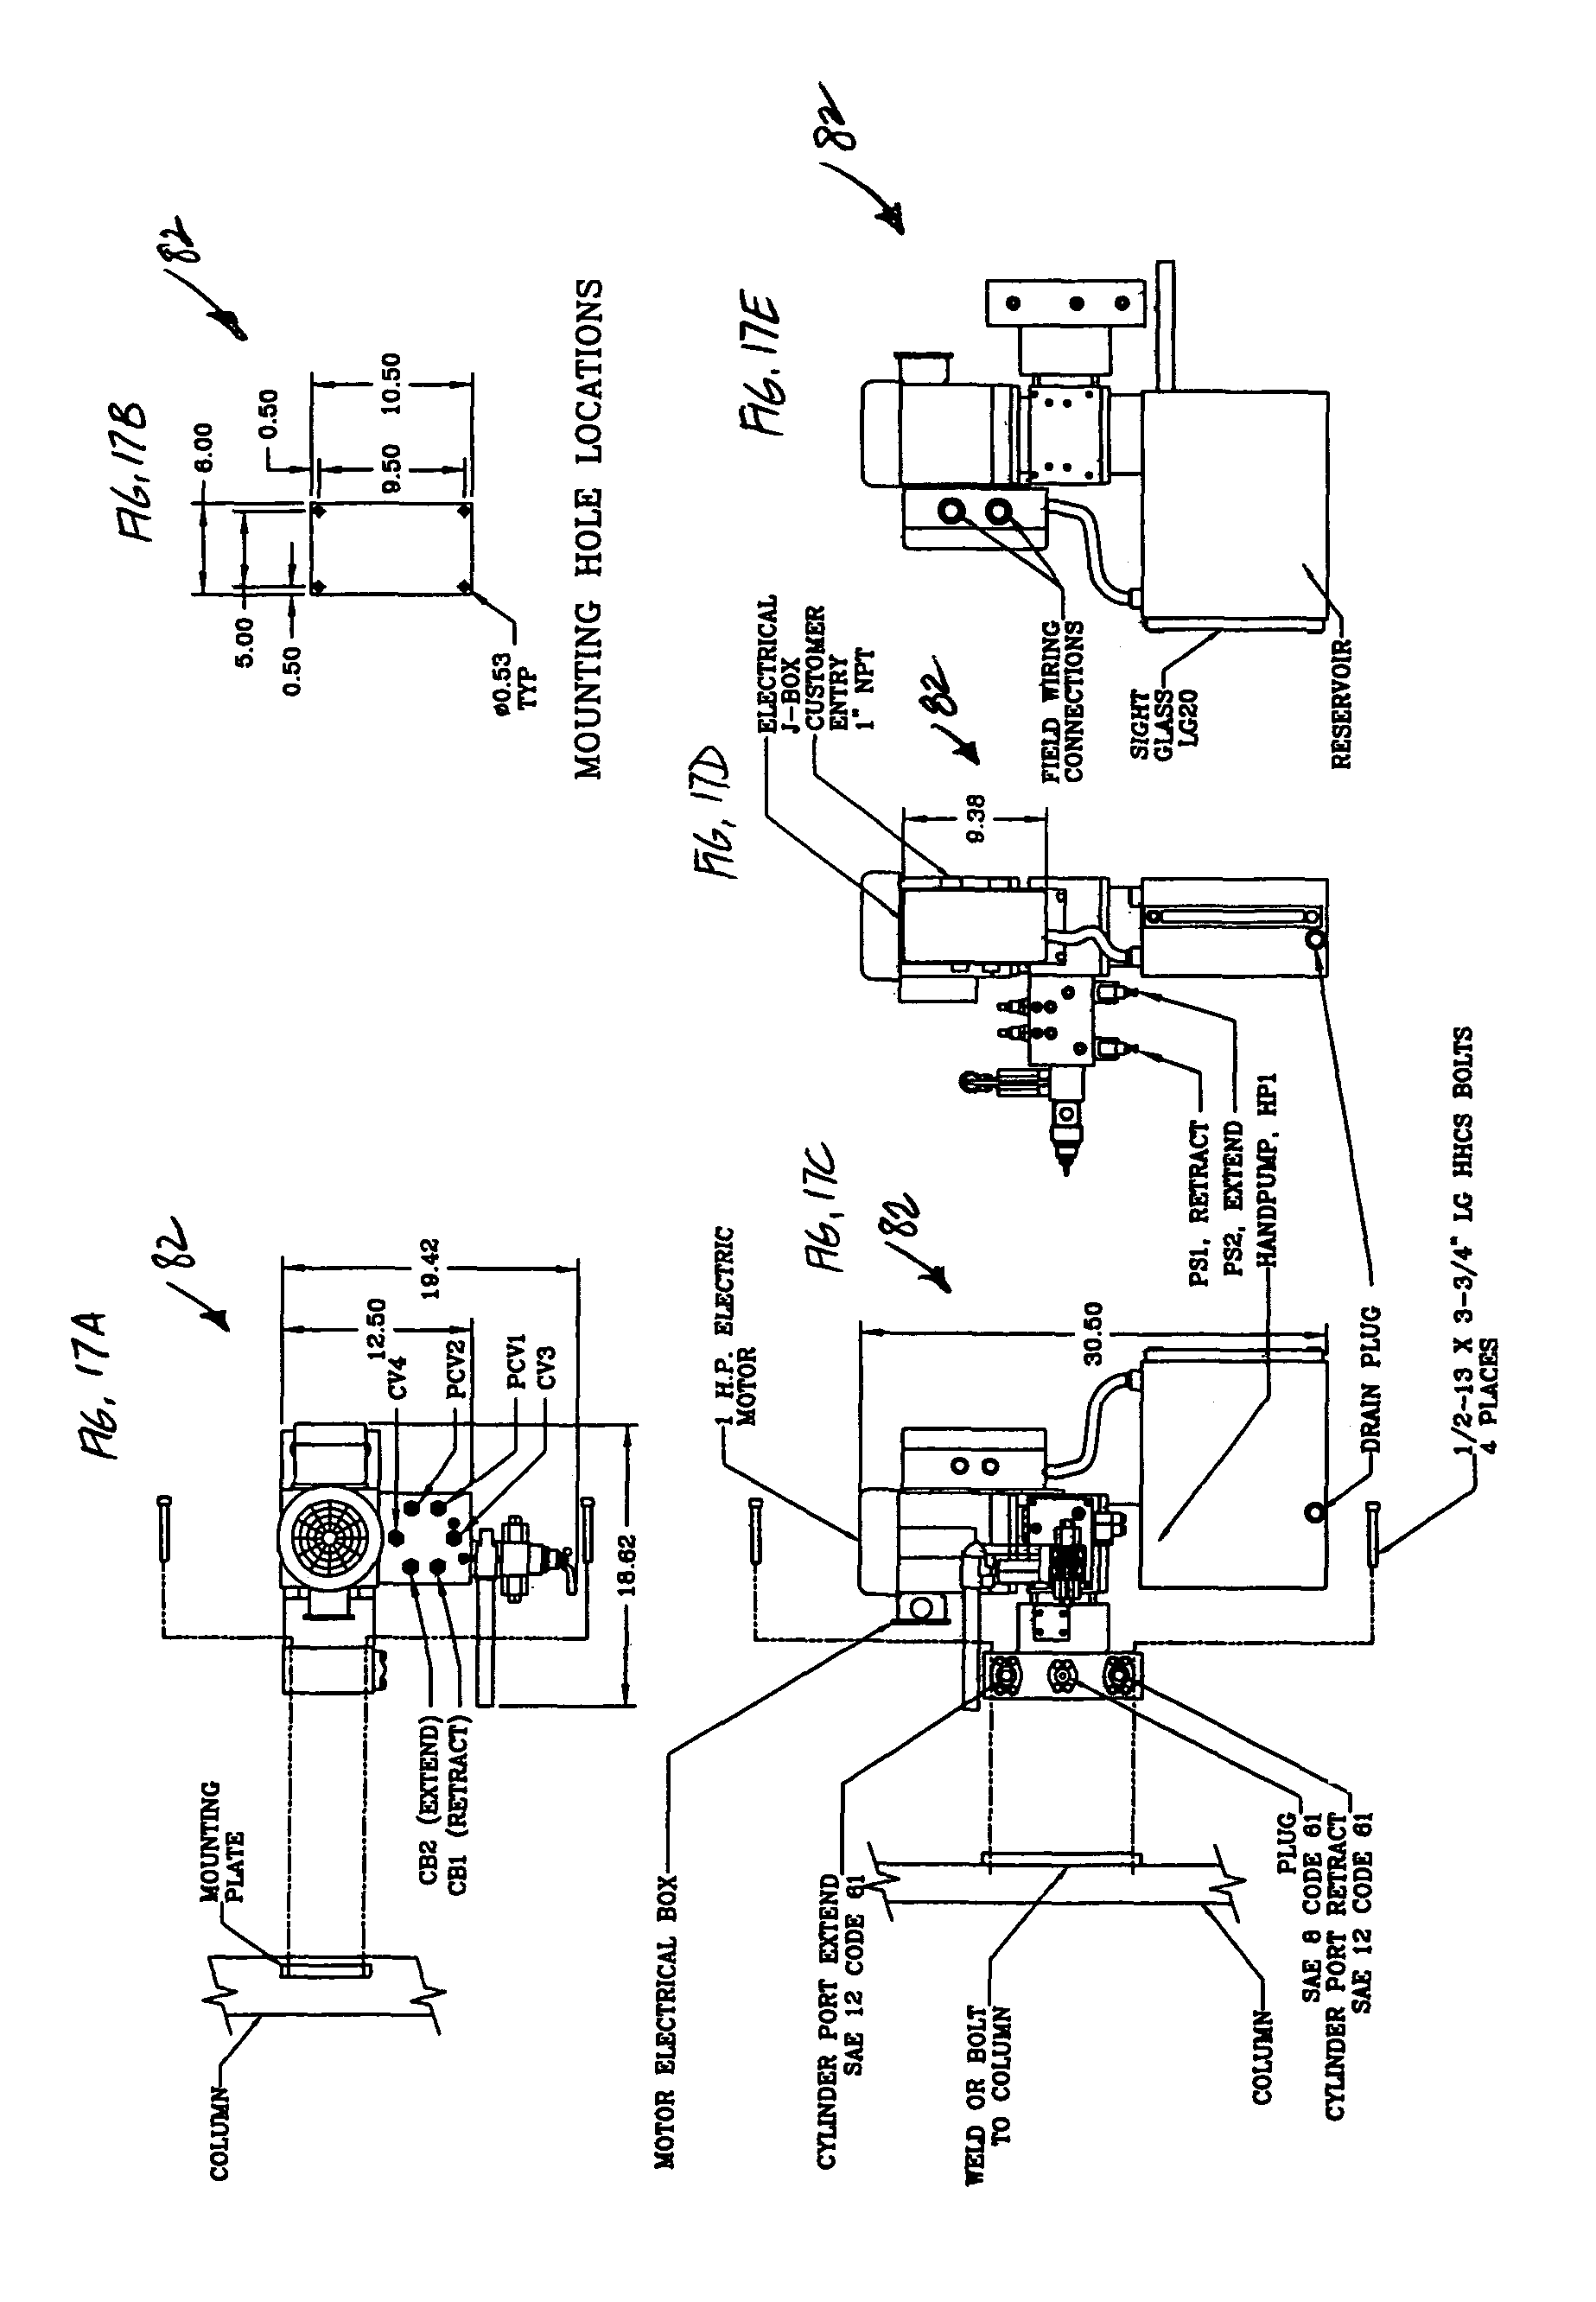 Pneumatic Schematic Safety Valve